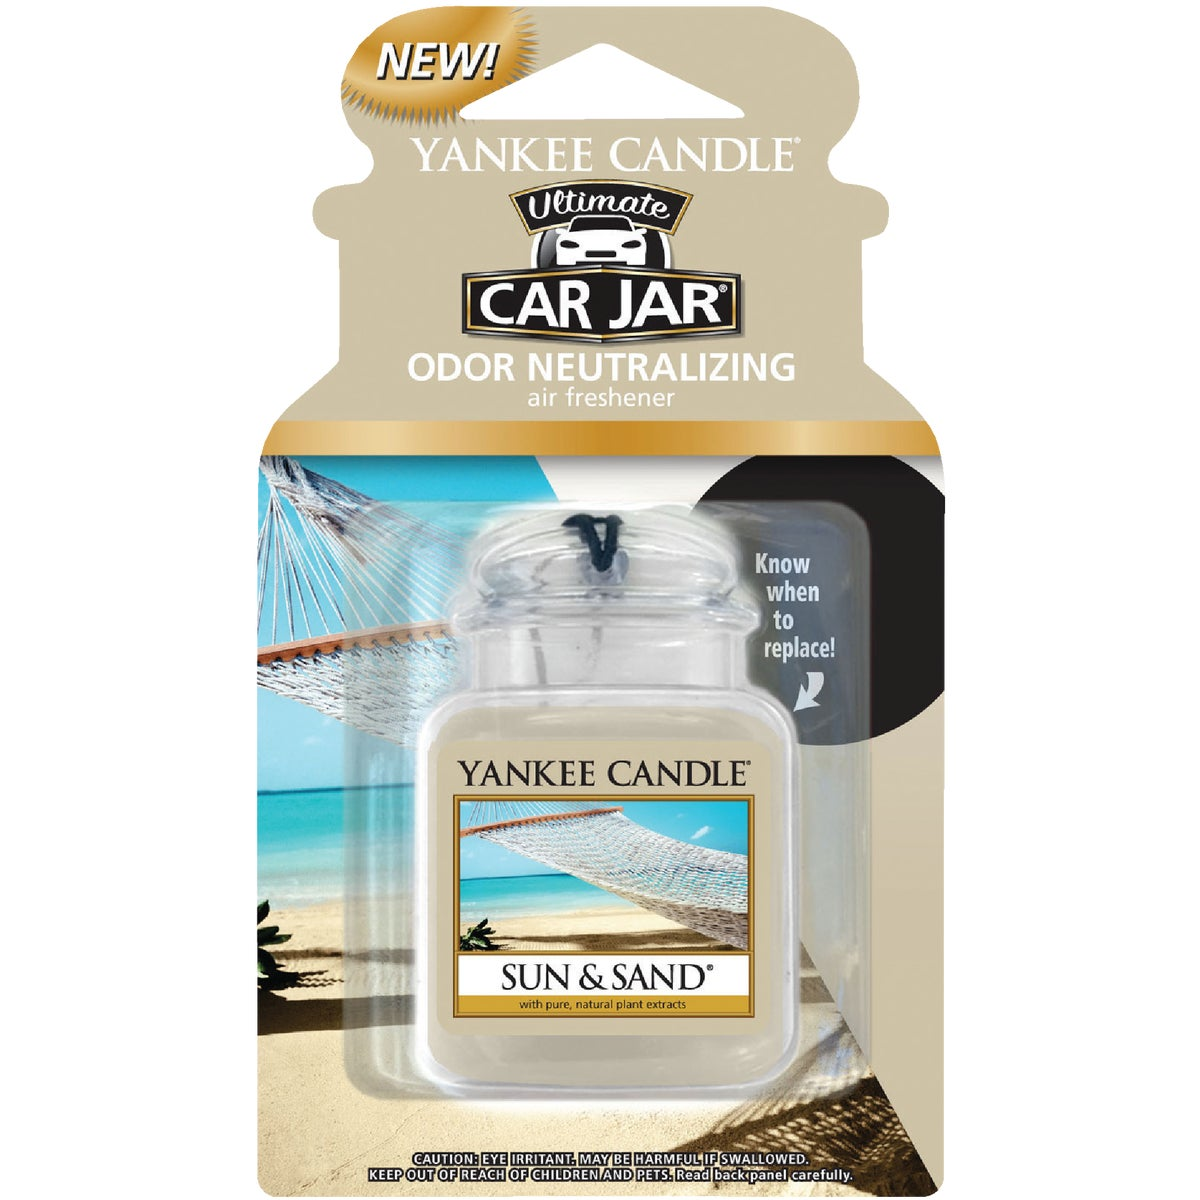 SUN & SAND CAR JAR ULTMT - 1220890 by Yankee Candle Co